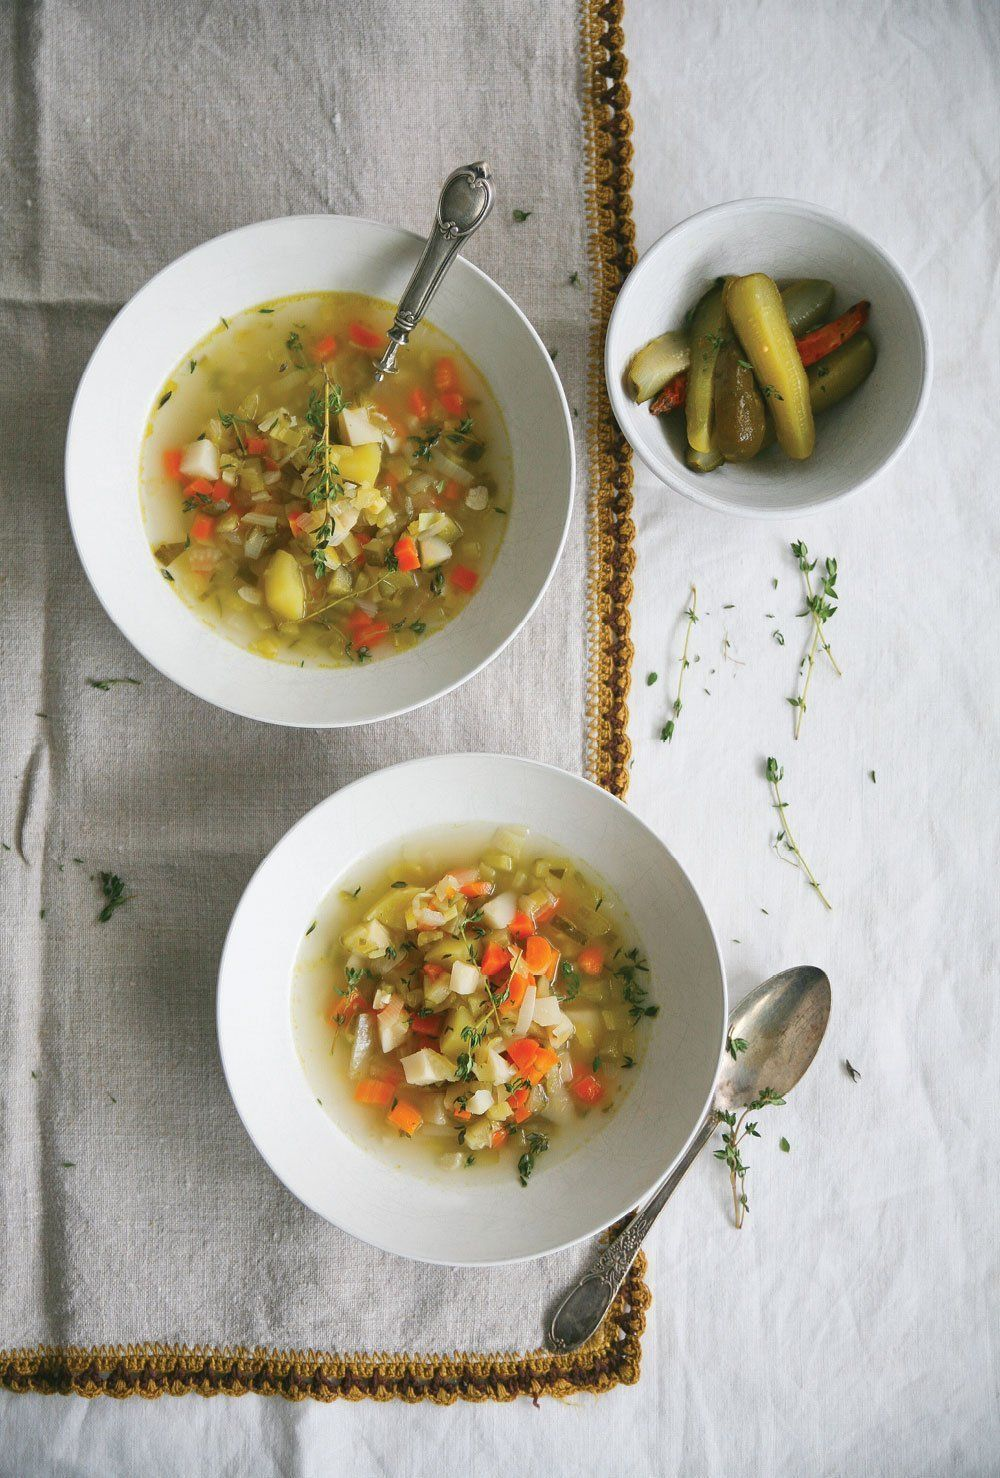 Dill Pickle Soup #dillpicklesoup Dill Pickle Soup @FoodBlogs #dillpicklesoup Dill Pickle Soup #dillpicklesoup Dill Pickle Soup @FoodBlogs #dillpicklesoup Dill Pickle Soup #dillpicklesoup Dill Pickle Soup @FoodBlogs #dillpicklesoup Dill Pickle Soup #dillpicklesoup Dill Pickle Soup @FoodBlogs #dillpicklesoup Dill Pickle Soup #dillpicklesoup Dill Pickle Soup @FoodBlogs #dillpicklesoup Dill Pickle Soup #dillpicklesoup Dill Pickle Soup @FoodBlogs #dillpicklesoup Dill Pickle Soup #dillpicklesoup Dill #dillpicklesoup